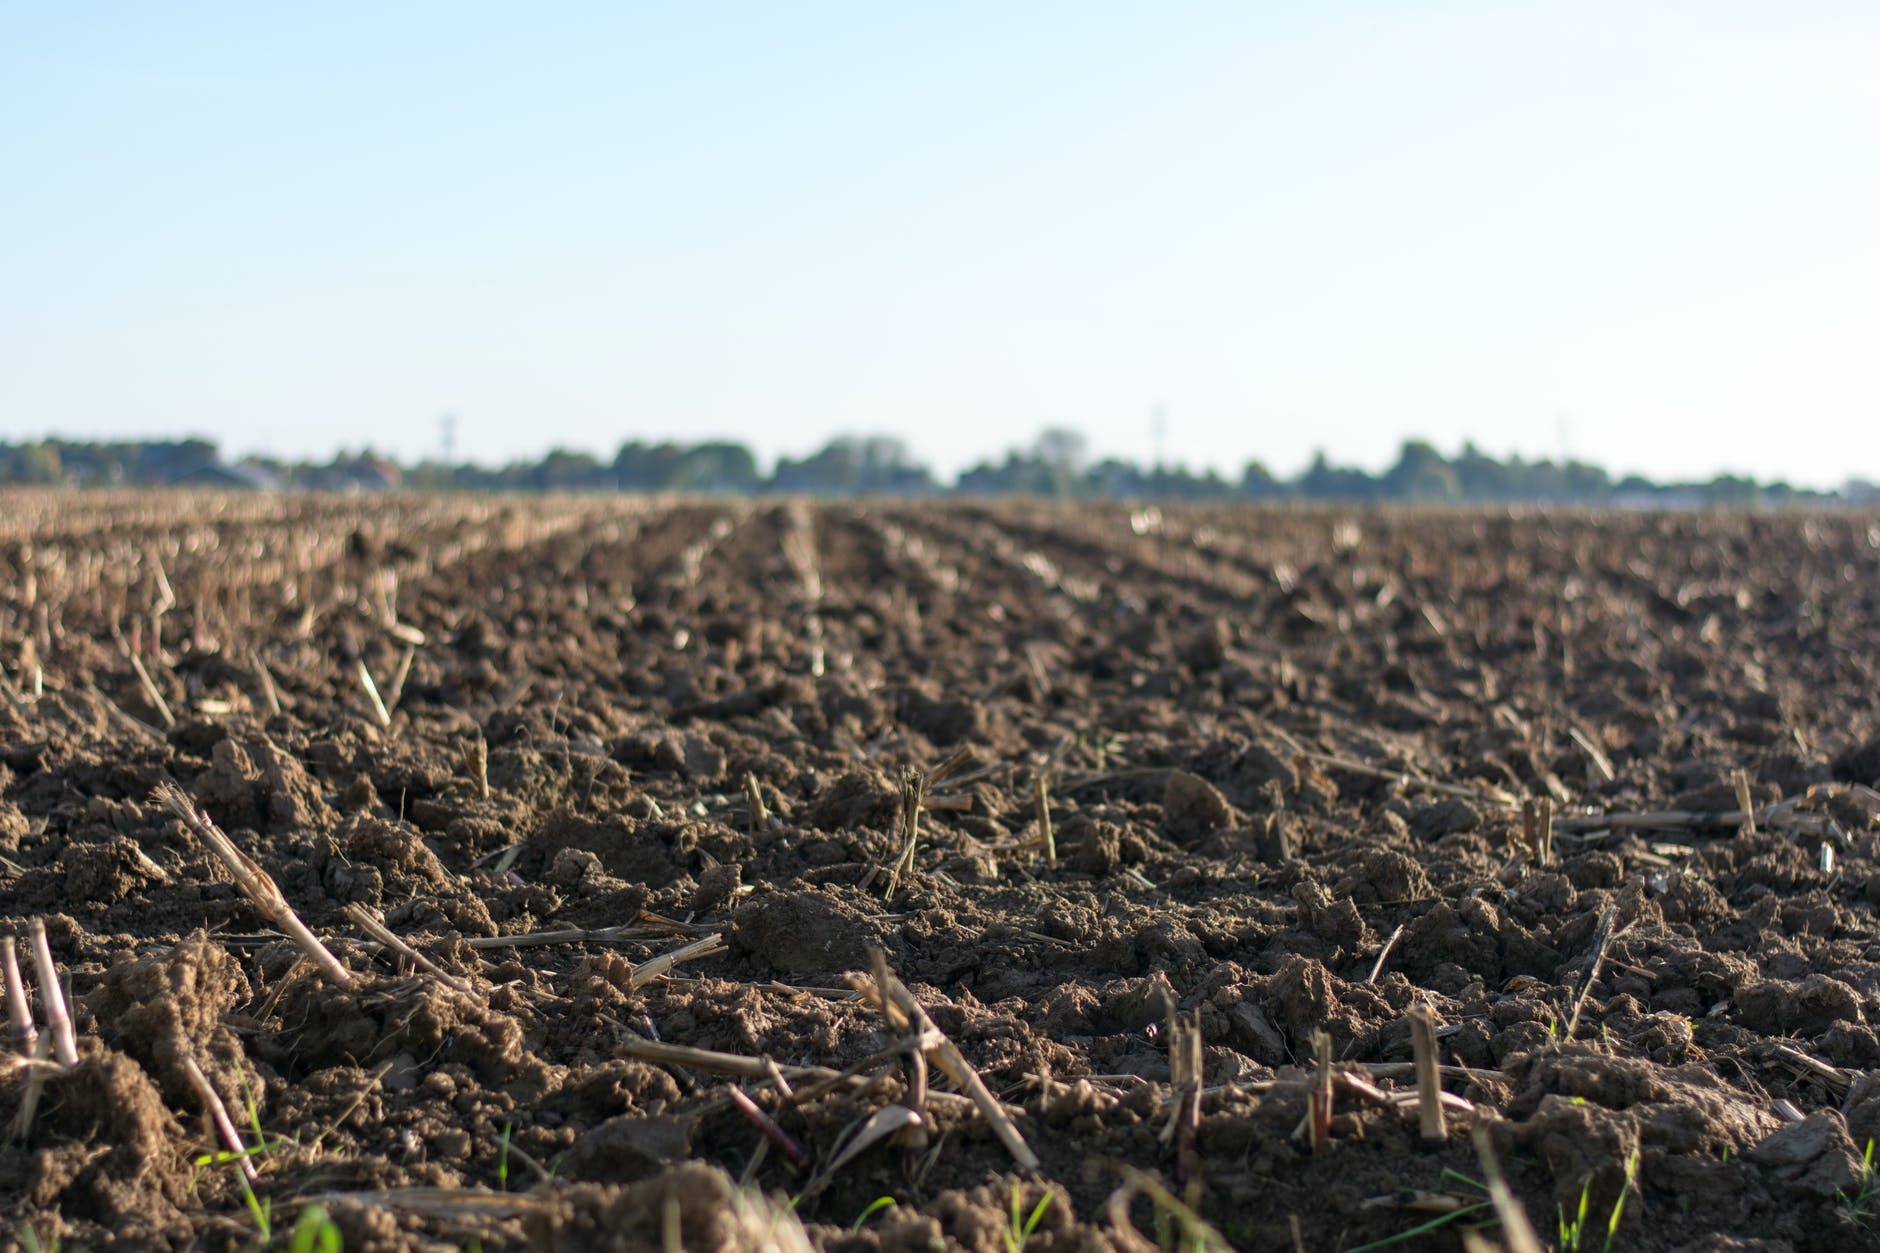 eye level photo of cultivated land